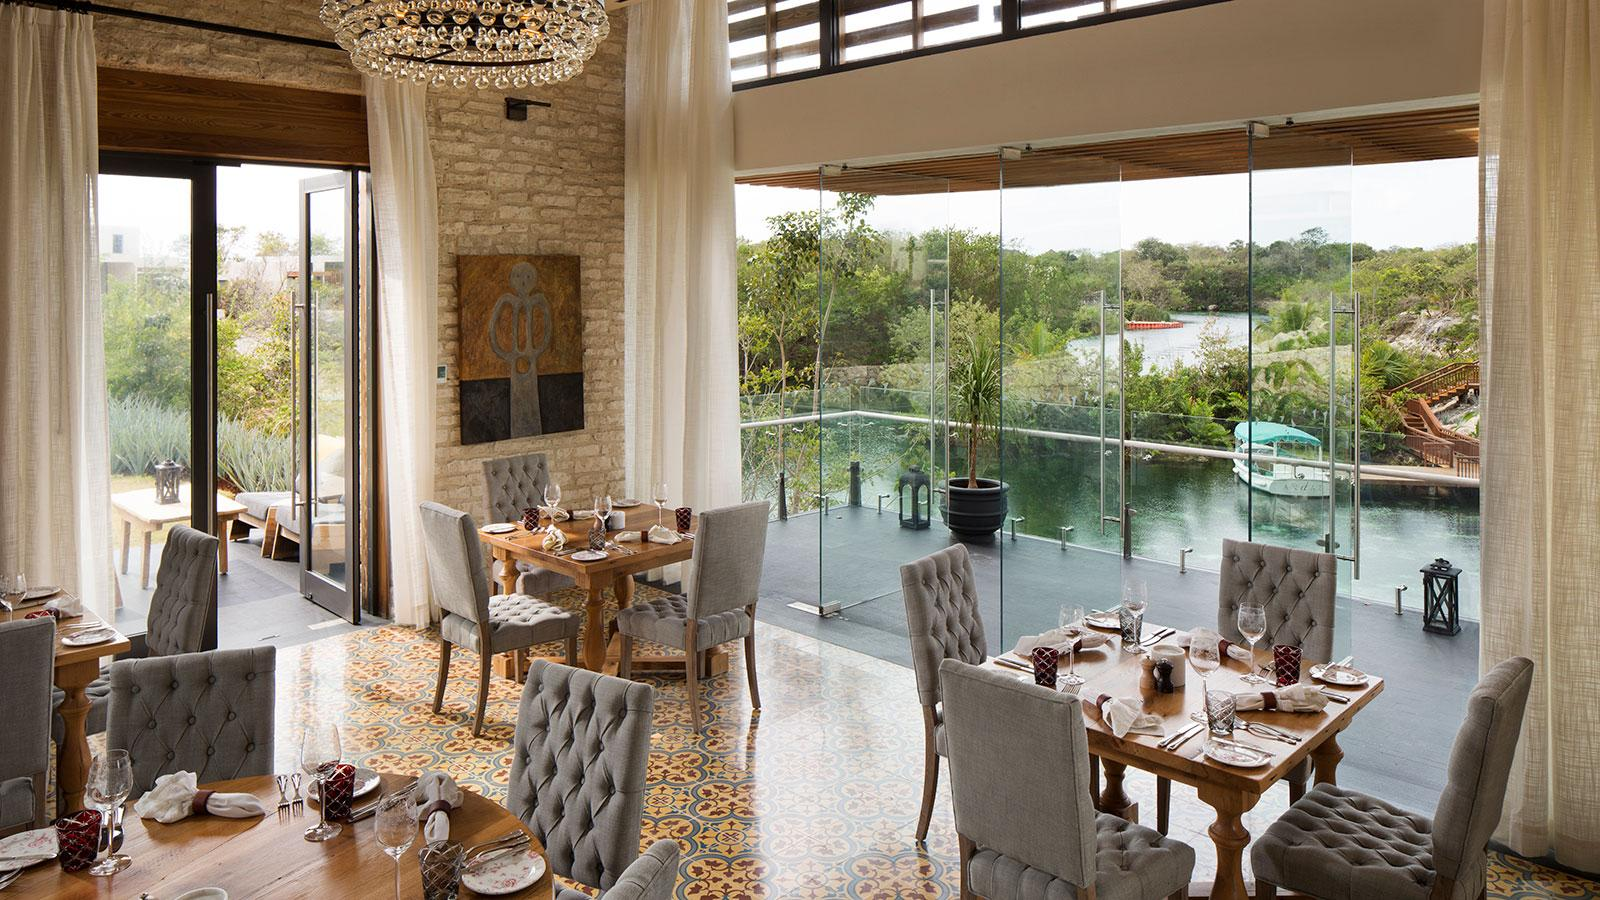 The restaurant won a prestigious interior design award as the best in all of Latin America and the Caribbean.